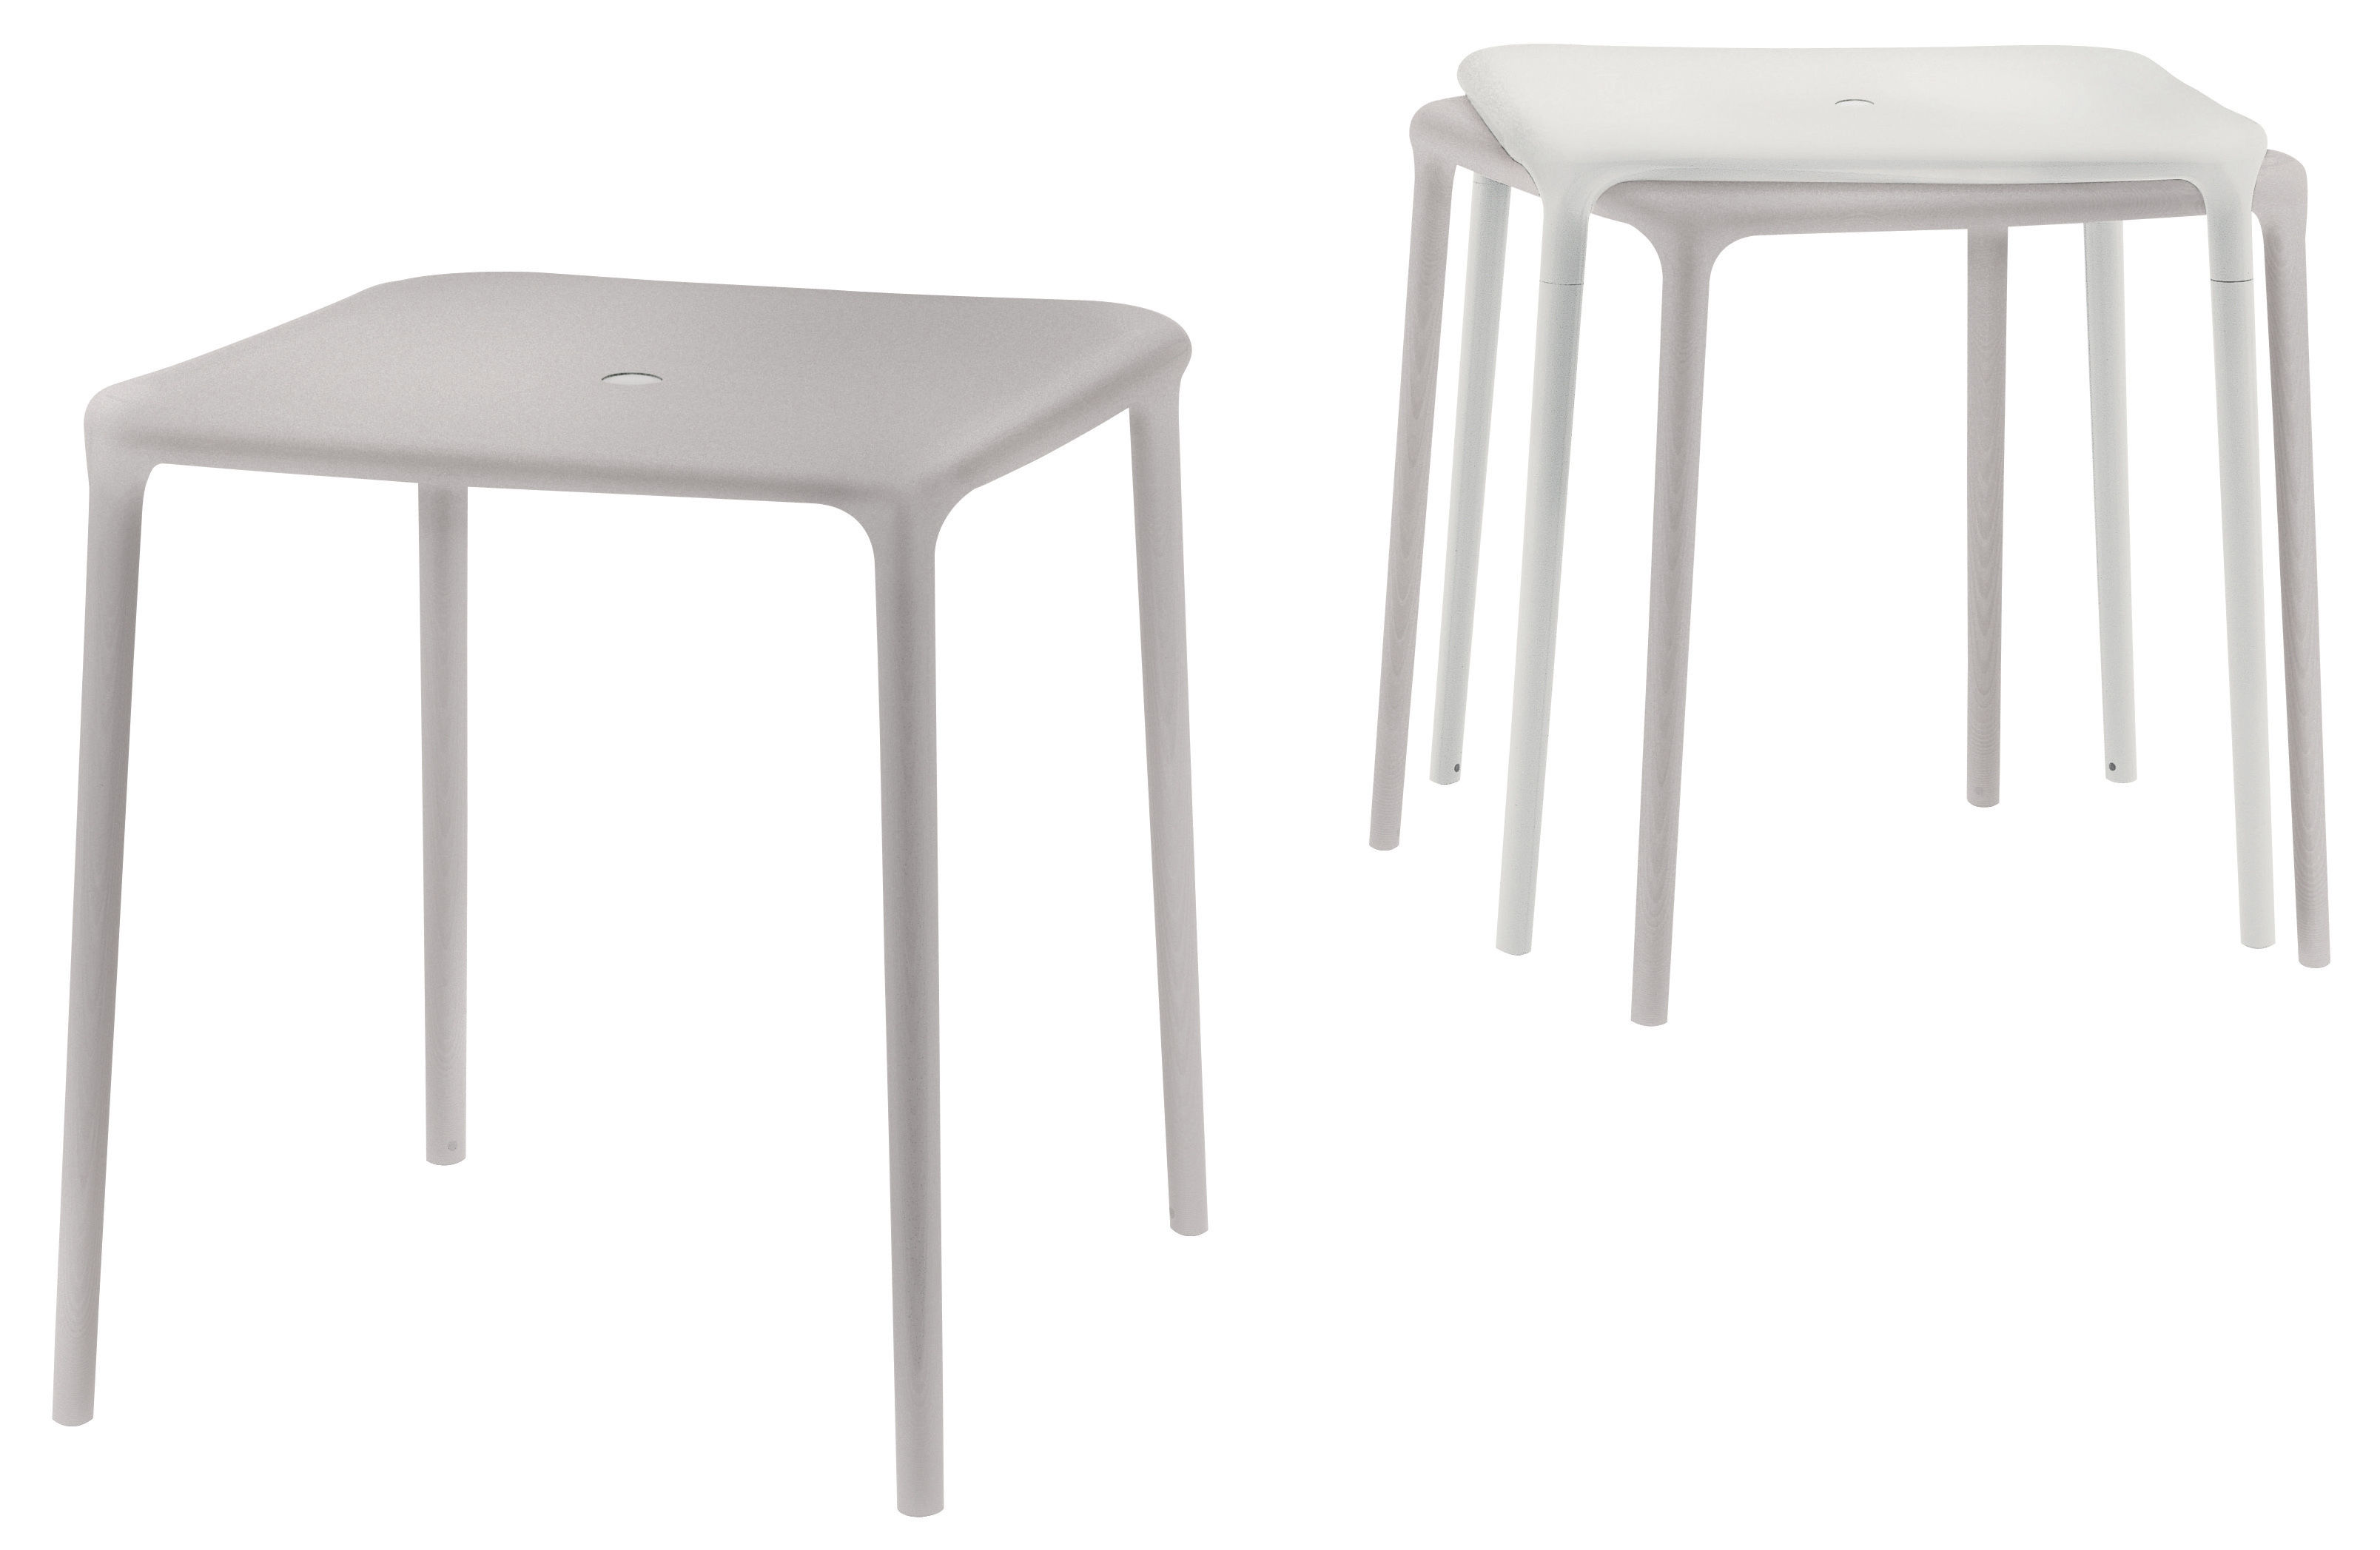 Air table garden table white 65 x 65 cm by magis for Magis table